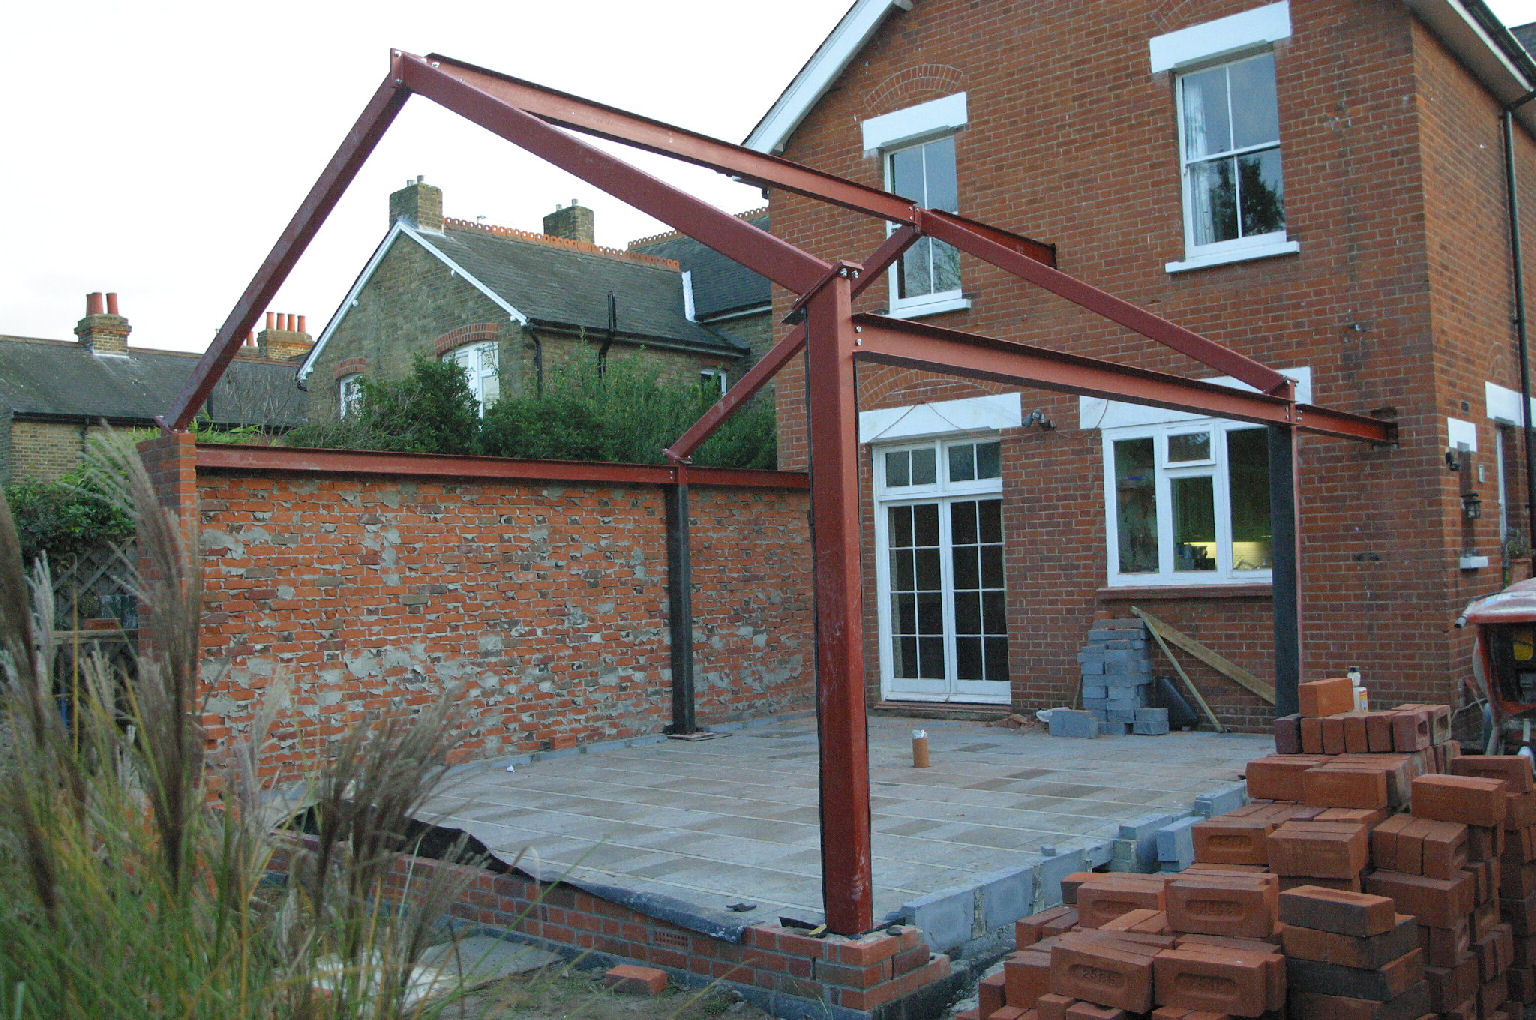 Roof Beam Span Uk Laminated Curved Beams Ideas House